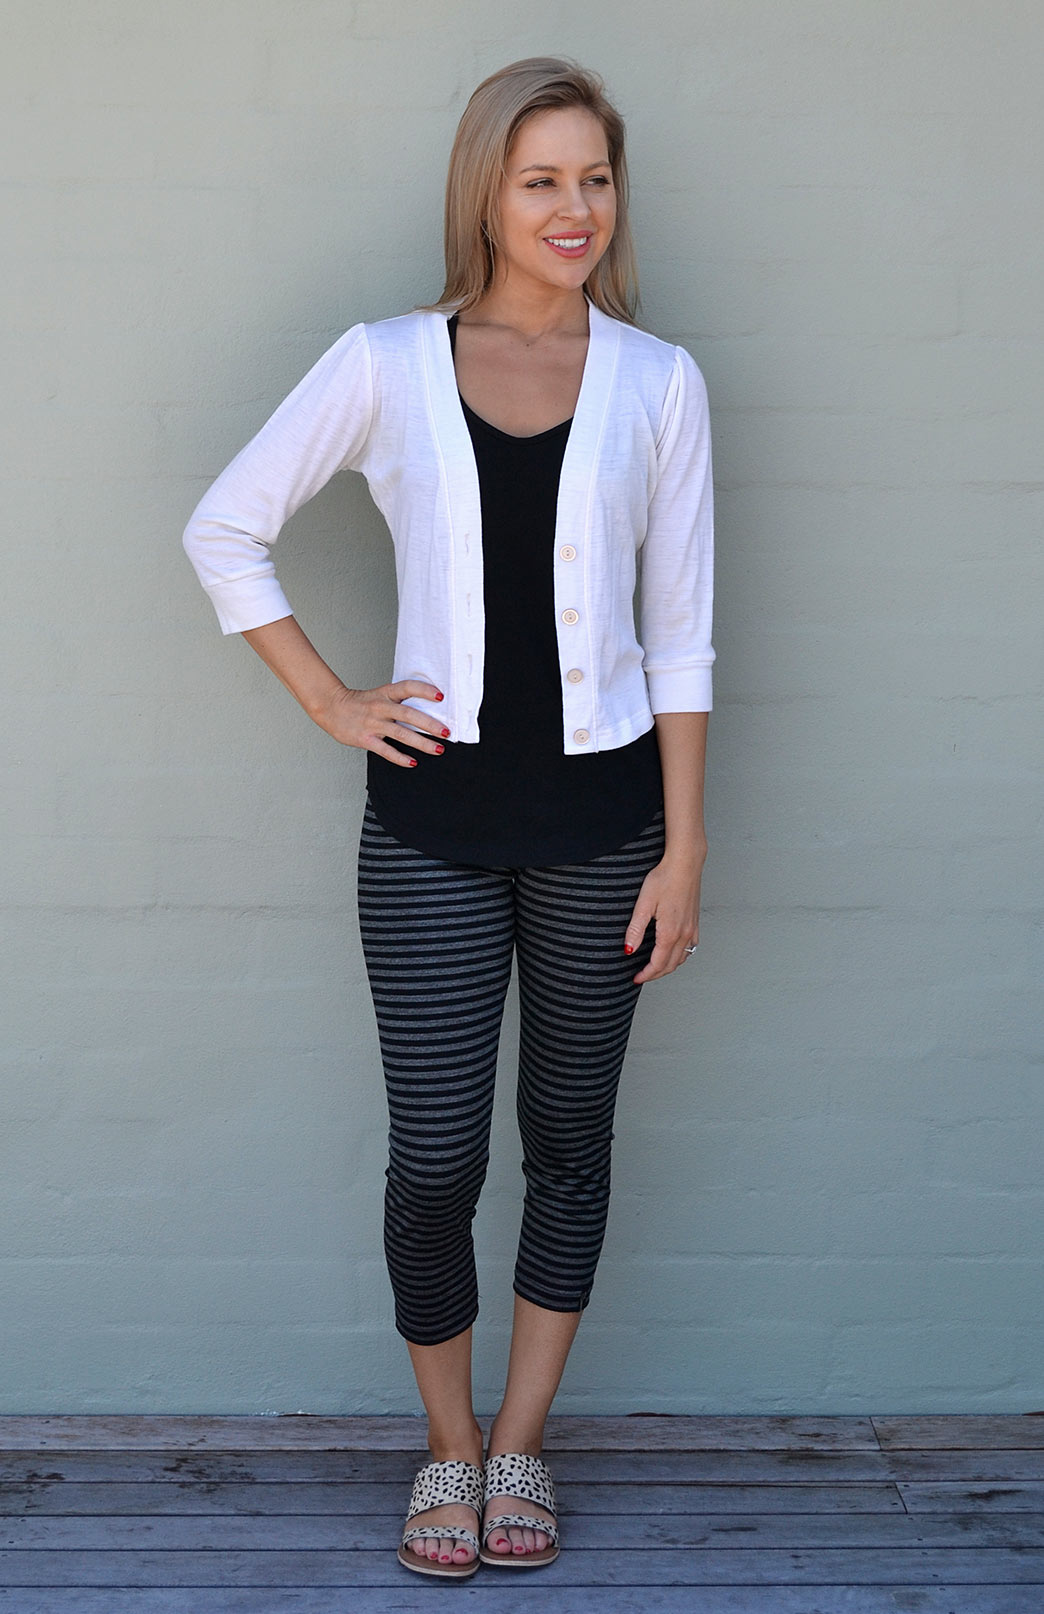 Crop Cardigan - 3/4 Sleeve - Women's Ivory Cropped Cardigan with 3/4 Sleeves and Buttons - Smitten Merino Tasmania Australia